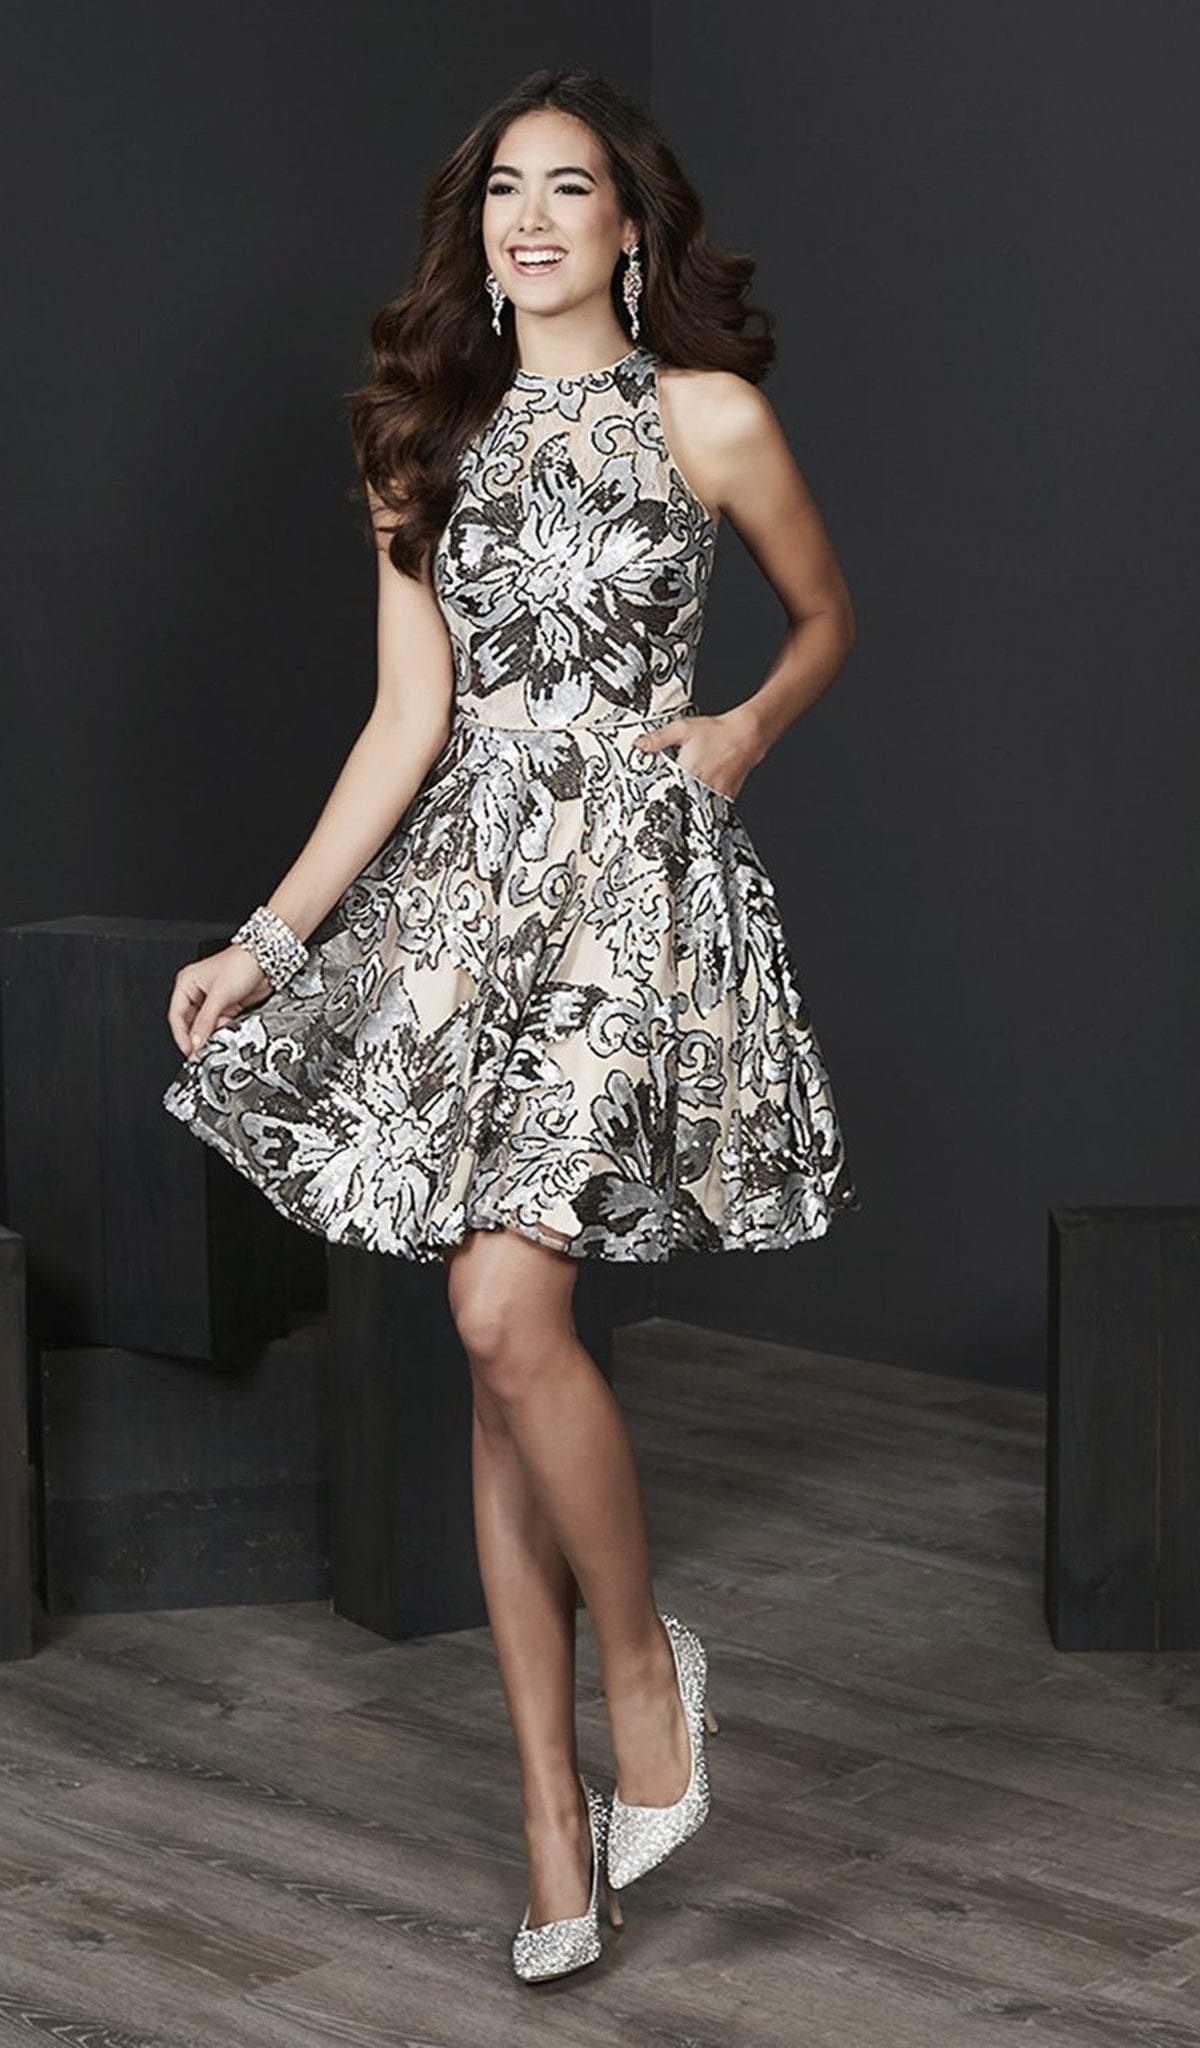 Tiffany Homecoming - 27217 Floral Sequined Halter Cocktail Dress from Tiffany Homecoming